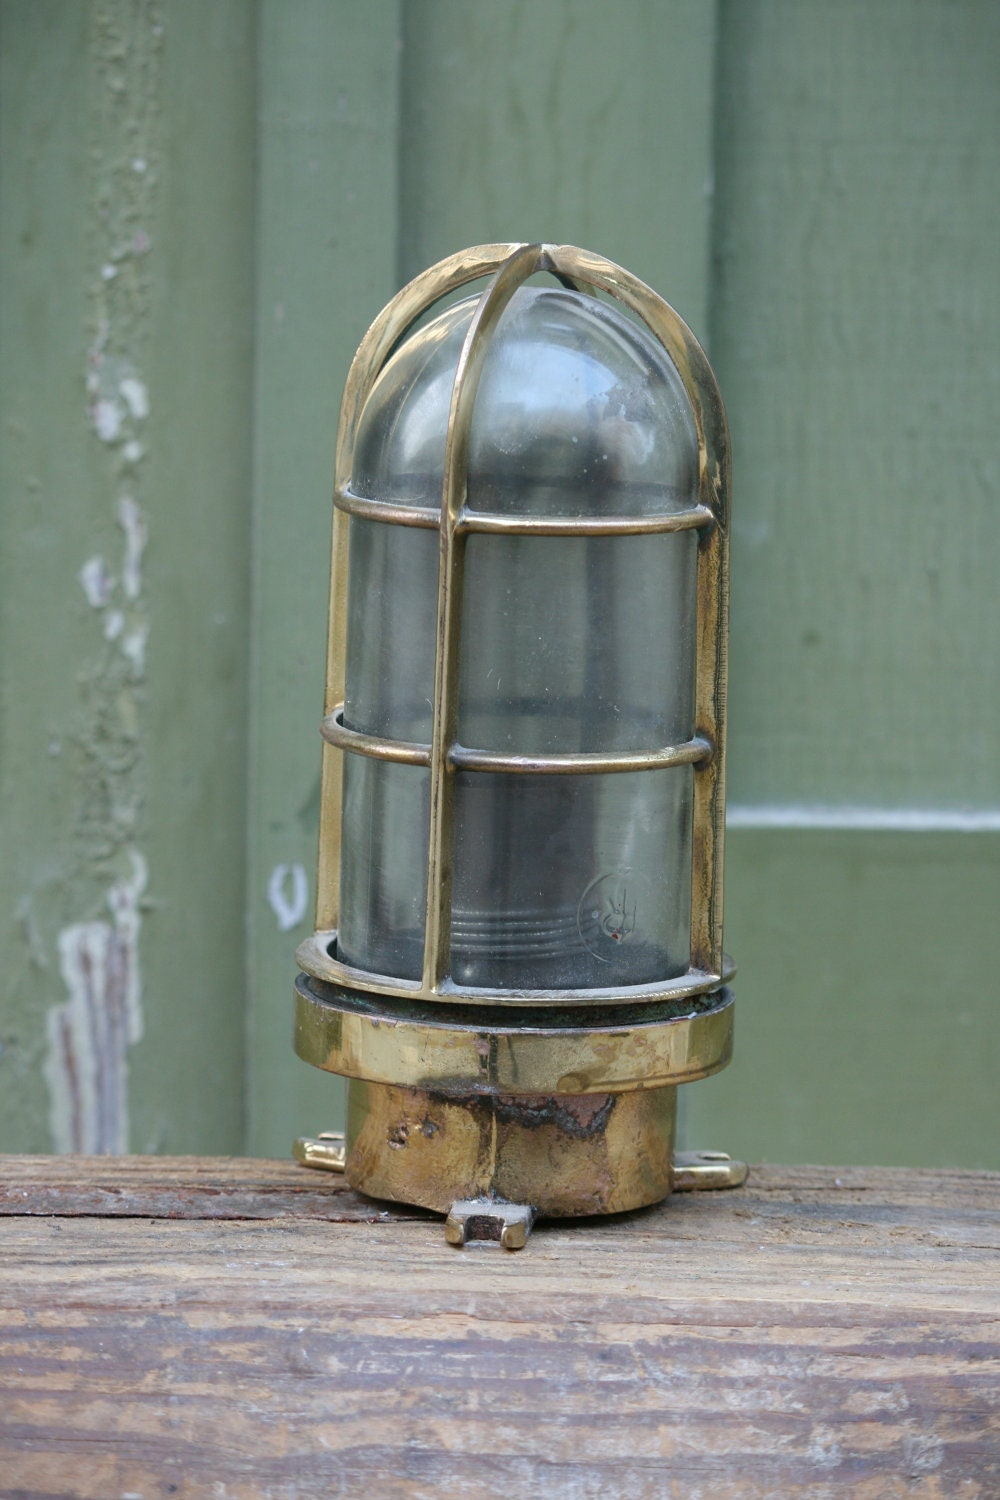 Wall Lamp For Desk : Vintage decorative desk or wall lamp